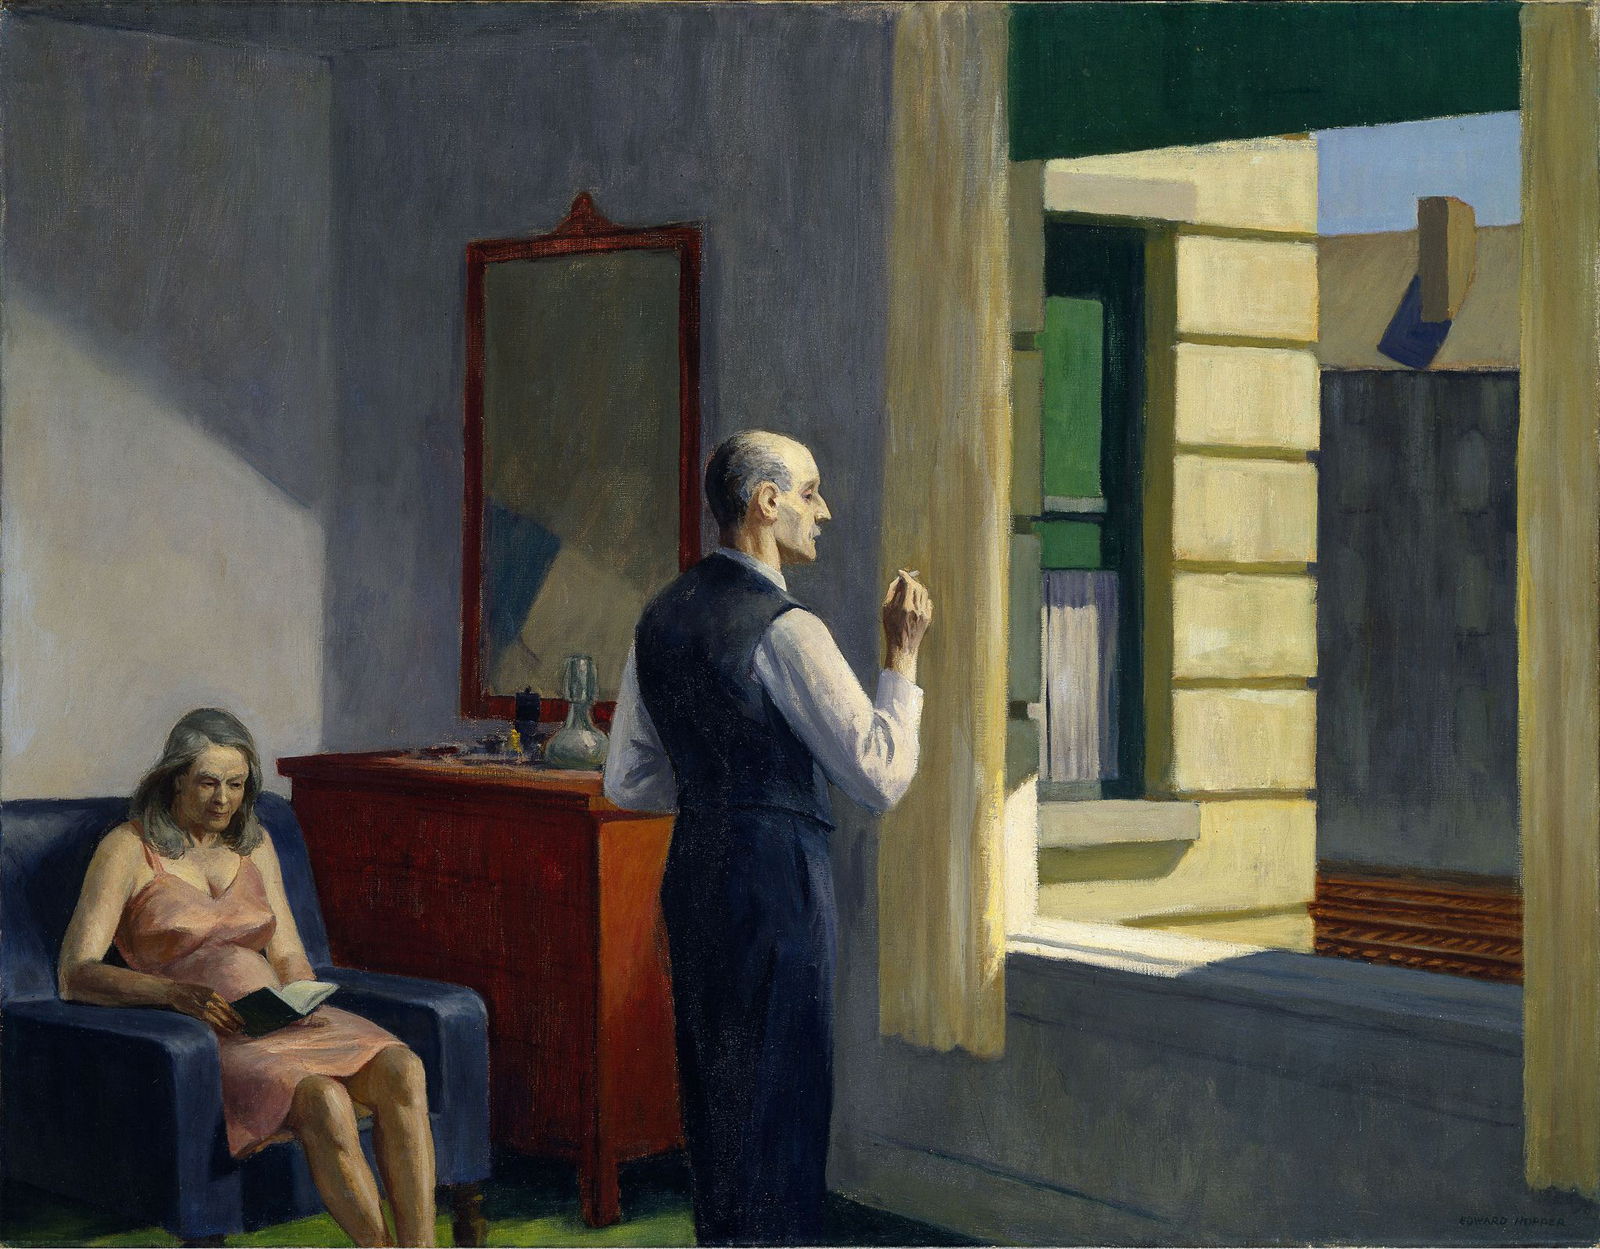 EdwardHopper-HotelByA-Railroad1952_x1600